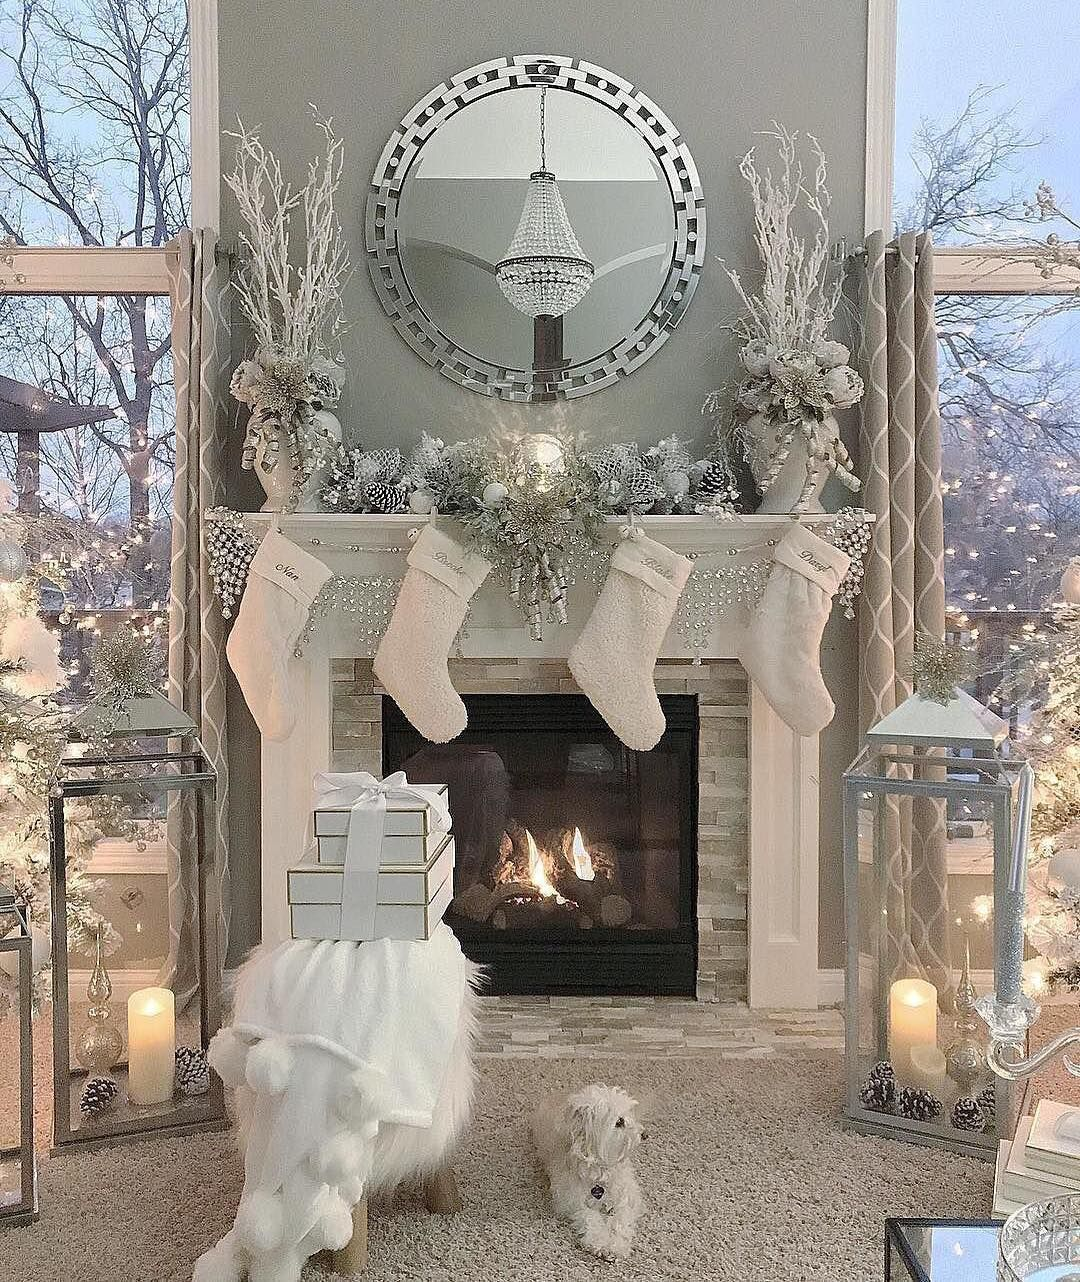 14 3k Likes 132 Comments Z Gallerie Zgallerie On Instagram Mirror Monday Christmas Mantel Decorations Christmas Fireplace Decor White Christmas Decor